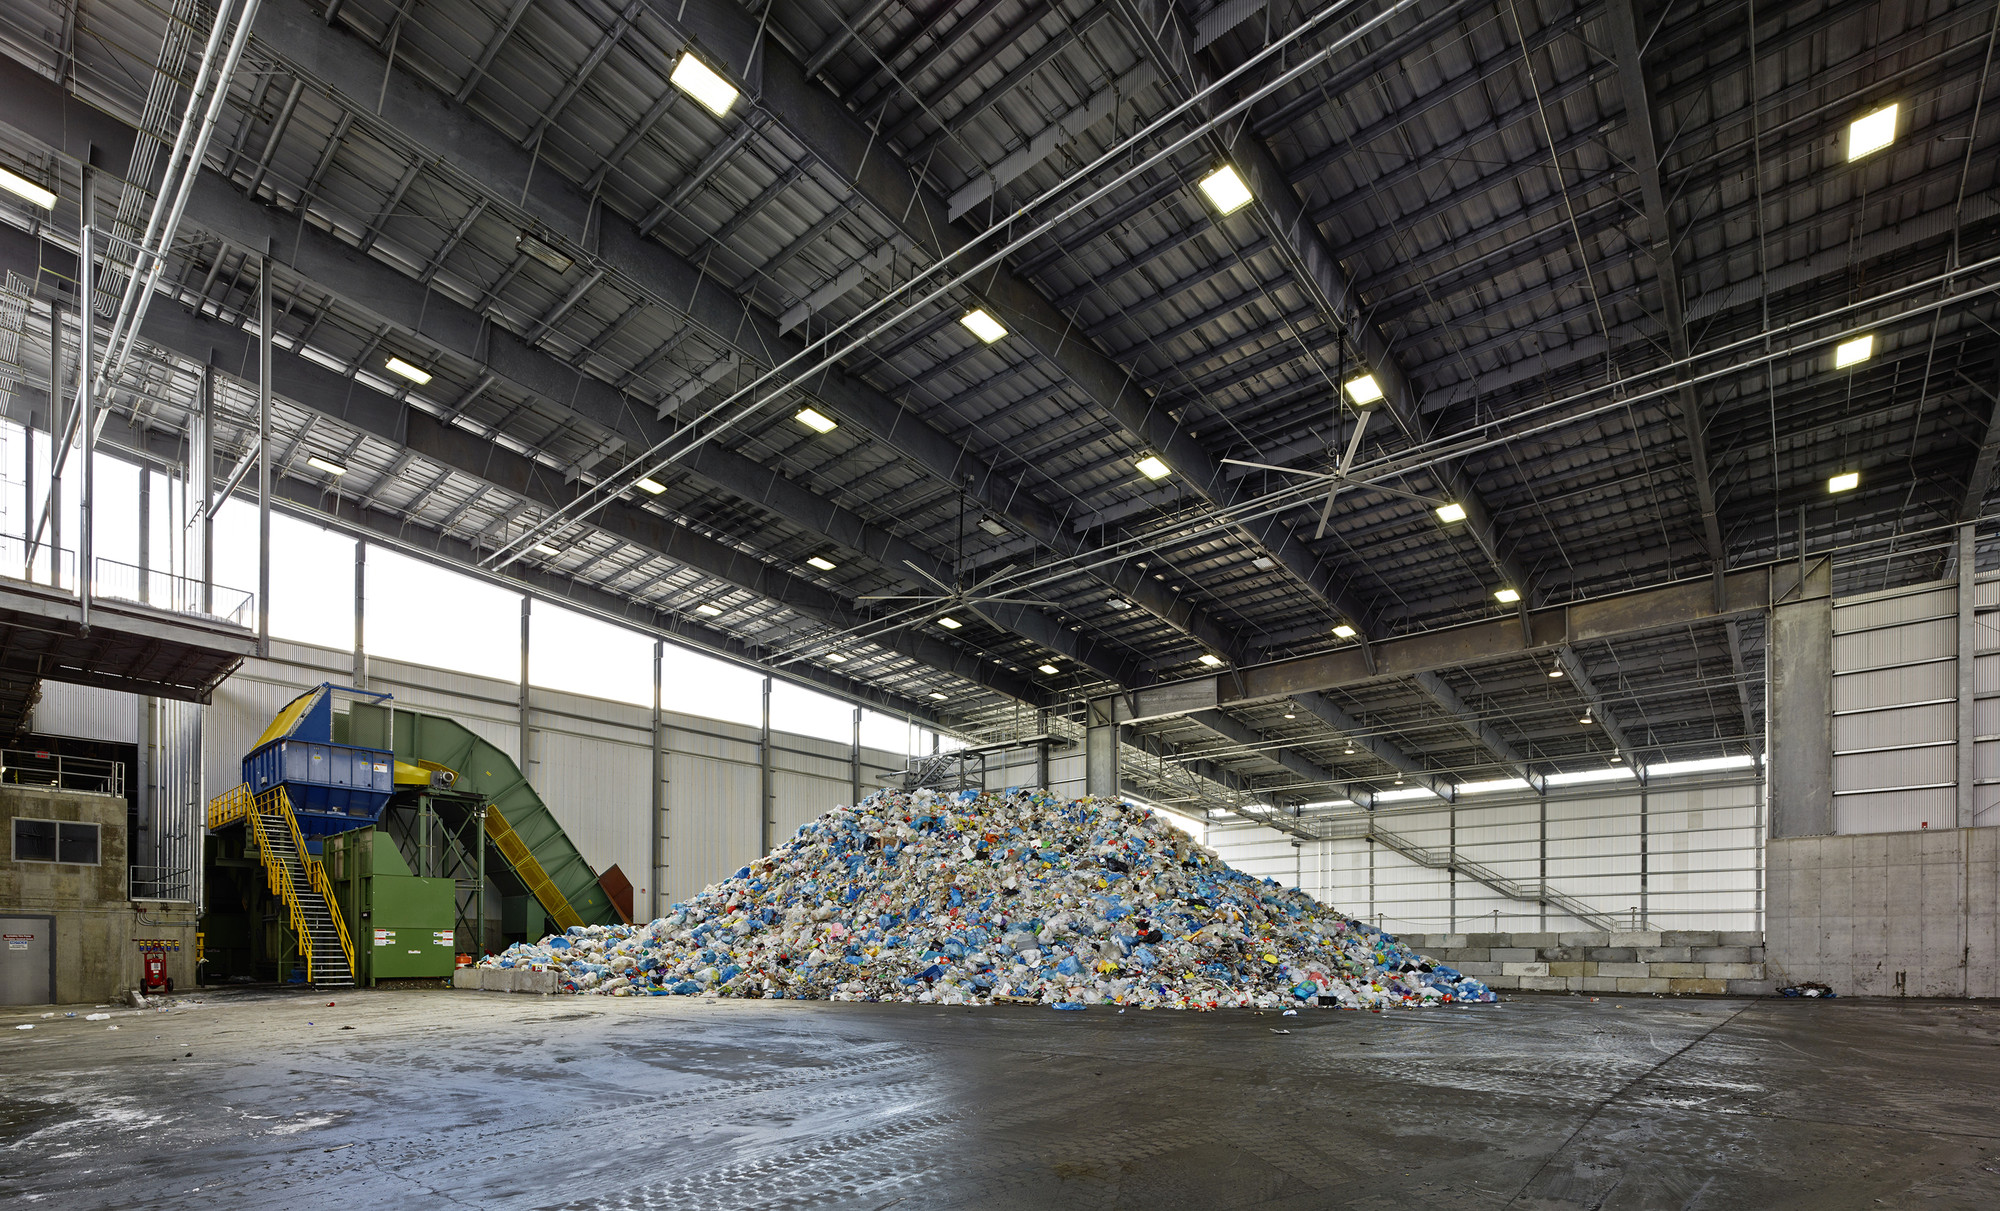 Sunset Park Material Recovery Facility / Selldorf Architects - Sheet3